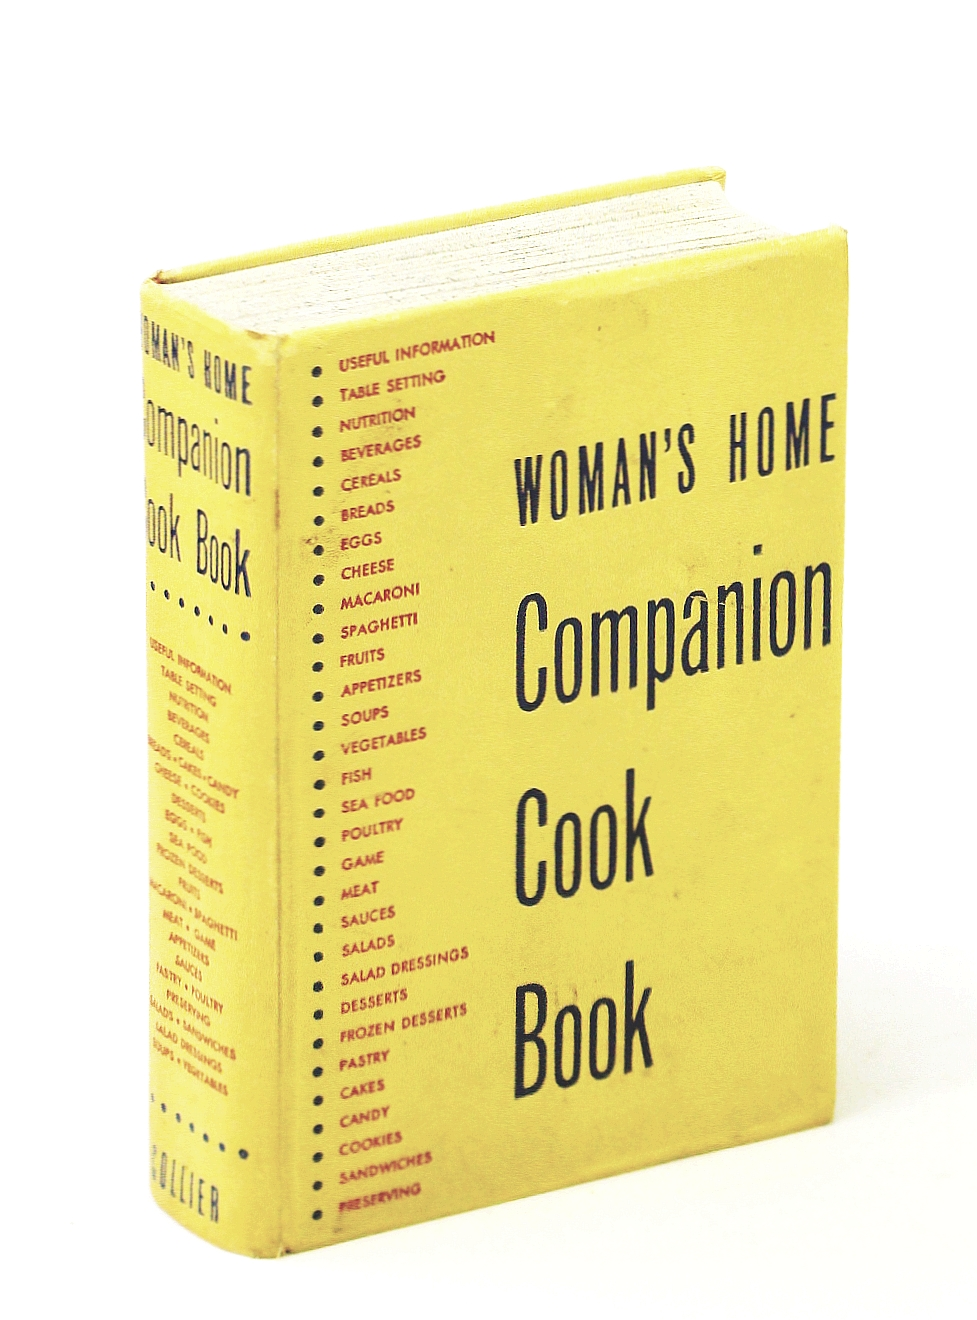 Image for Woman's Home Companion Cook Book